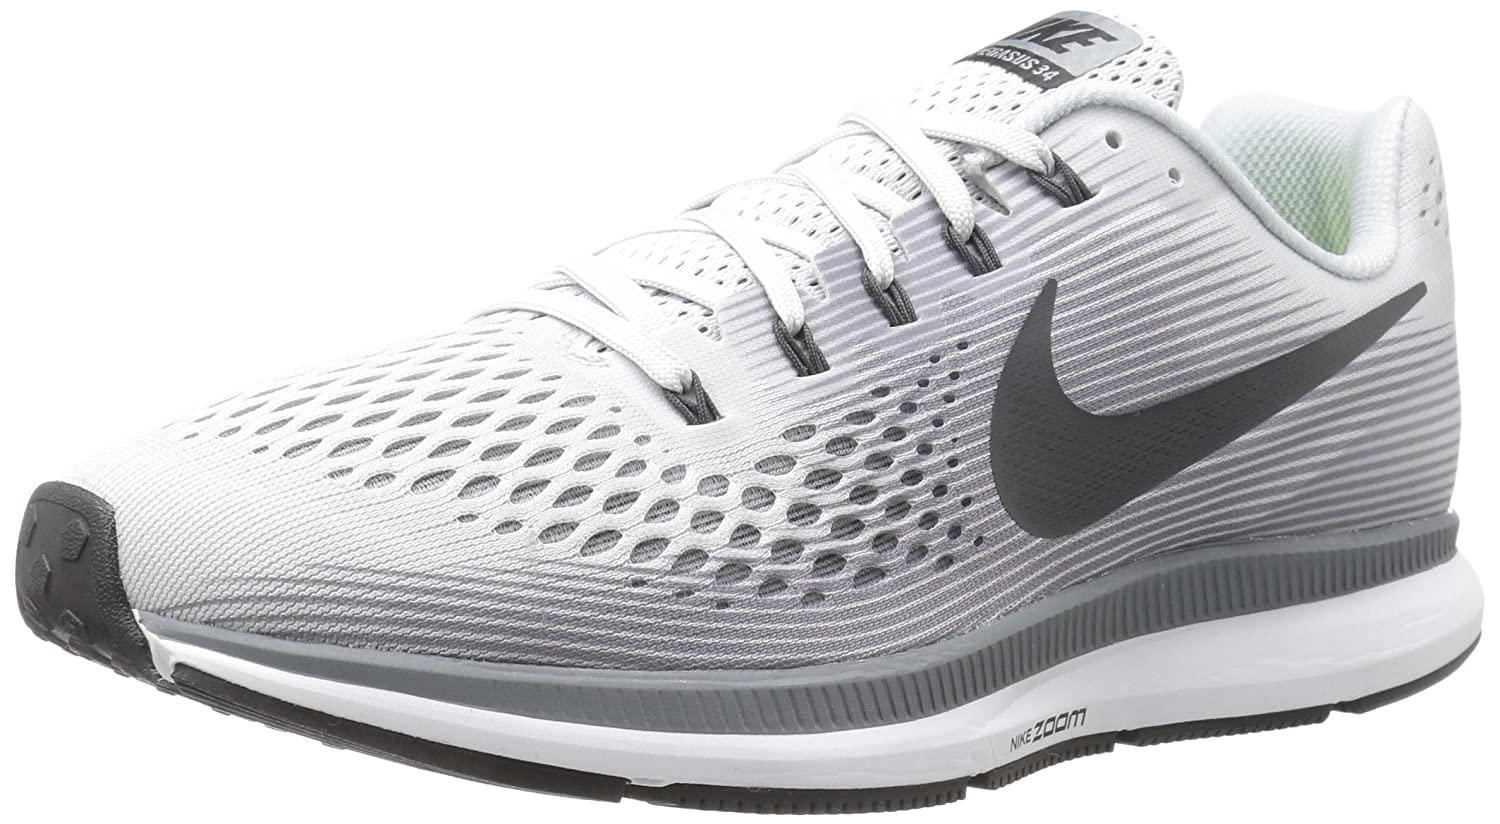 Durable Nike Herren Trainers, Nike Running Air Zoom Pegasus